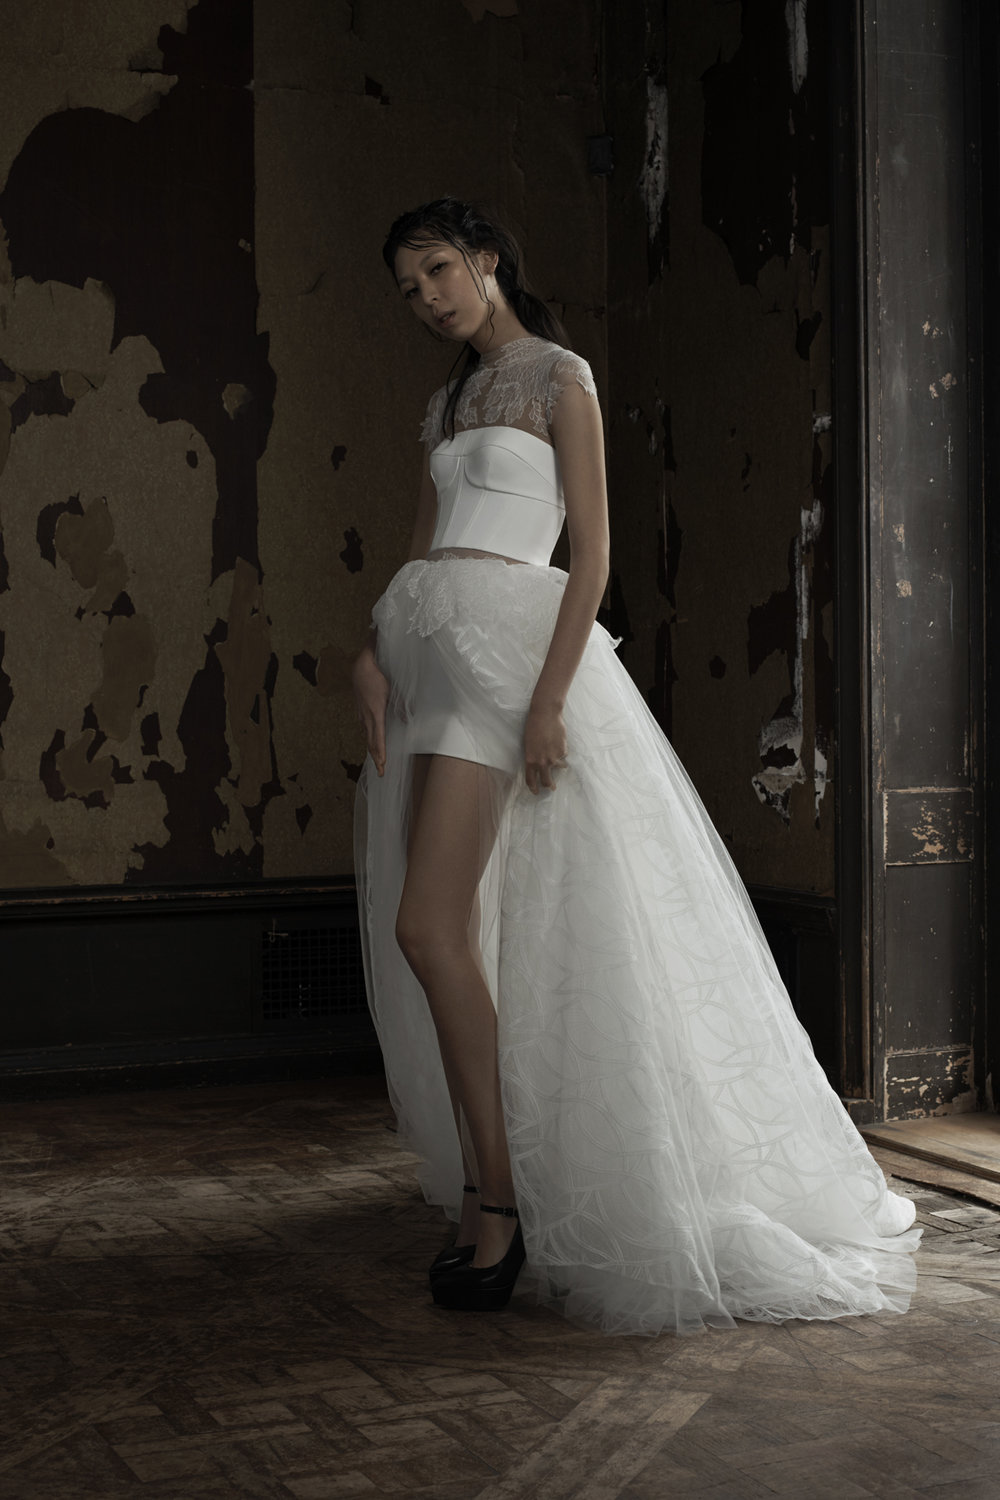 Season: Spring 2016    Gown name: Alejandra    Description: A soft white slit tulle and geometric lace skirt ball gown with classic corset detail bodice accented by hand applique Chantilly lace at the neckline, cap sleeve and skirt.